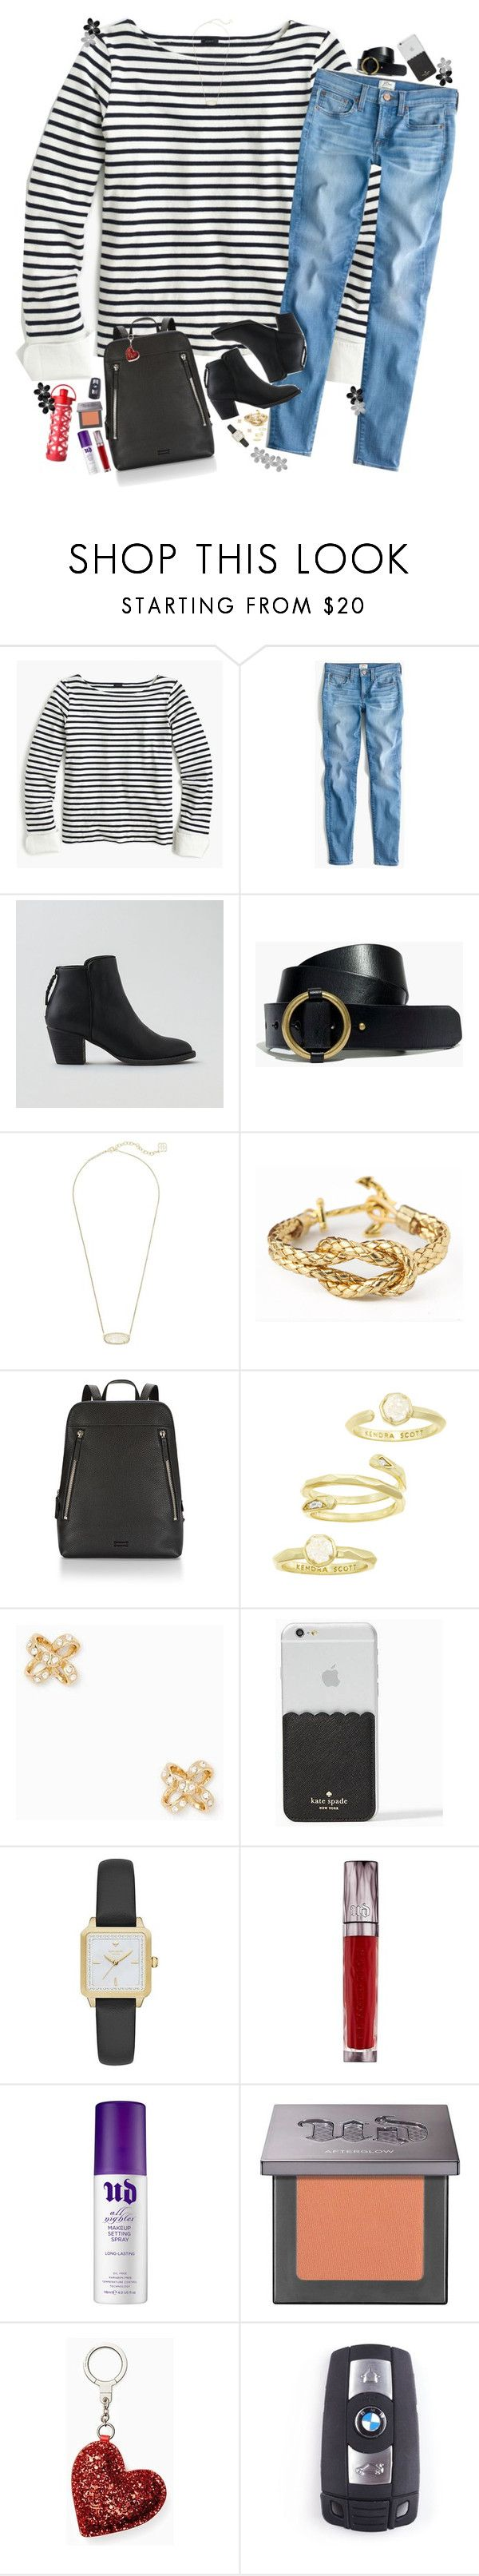 """jeg elsker deg."" by teamboby ❤ liked on Polyvore featuring J.Crew, American Eagle Outfitters, Madewell, Kendra Scott, Kate Spade, Urban Decay, BMW, Lifefactory, SHAN and Hudson Jeans"